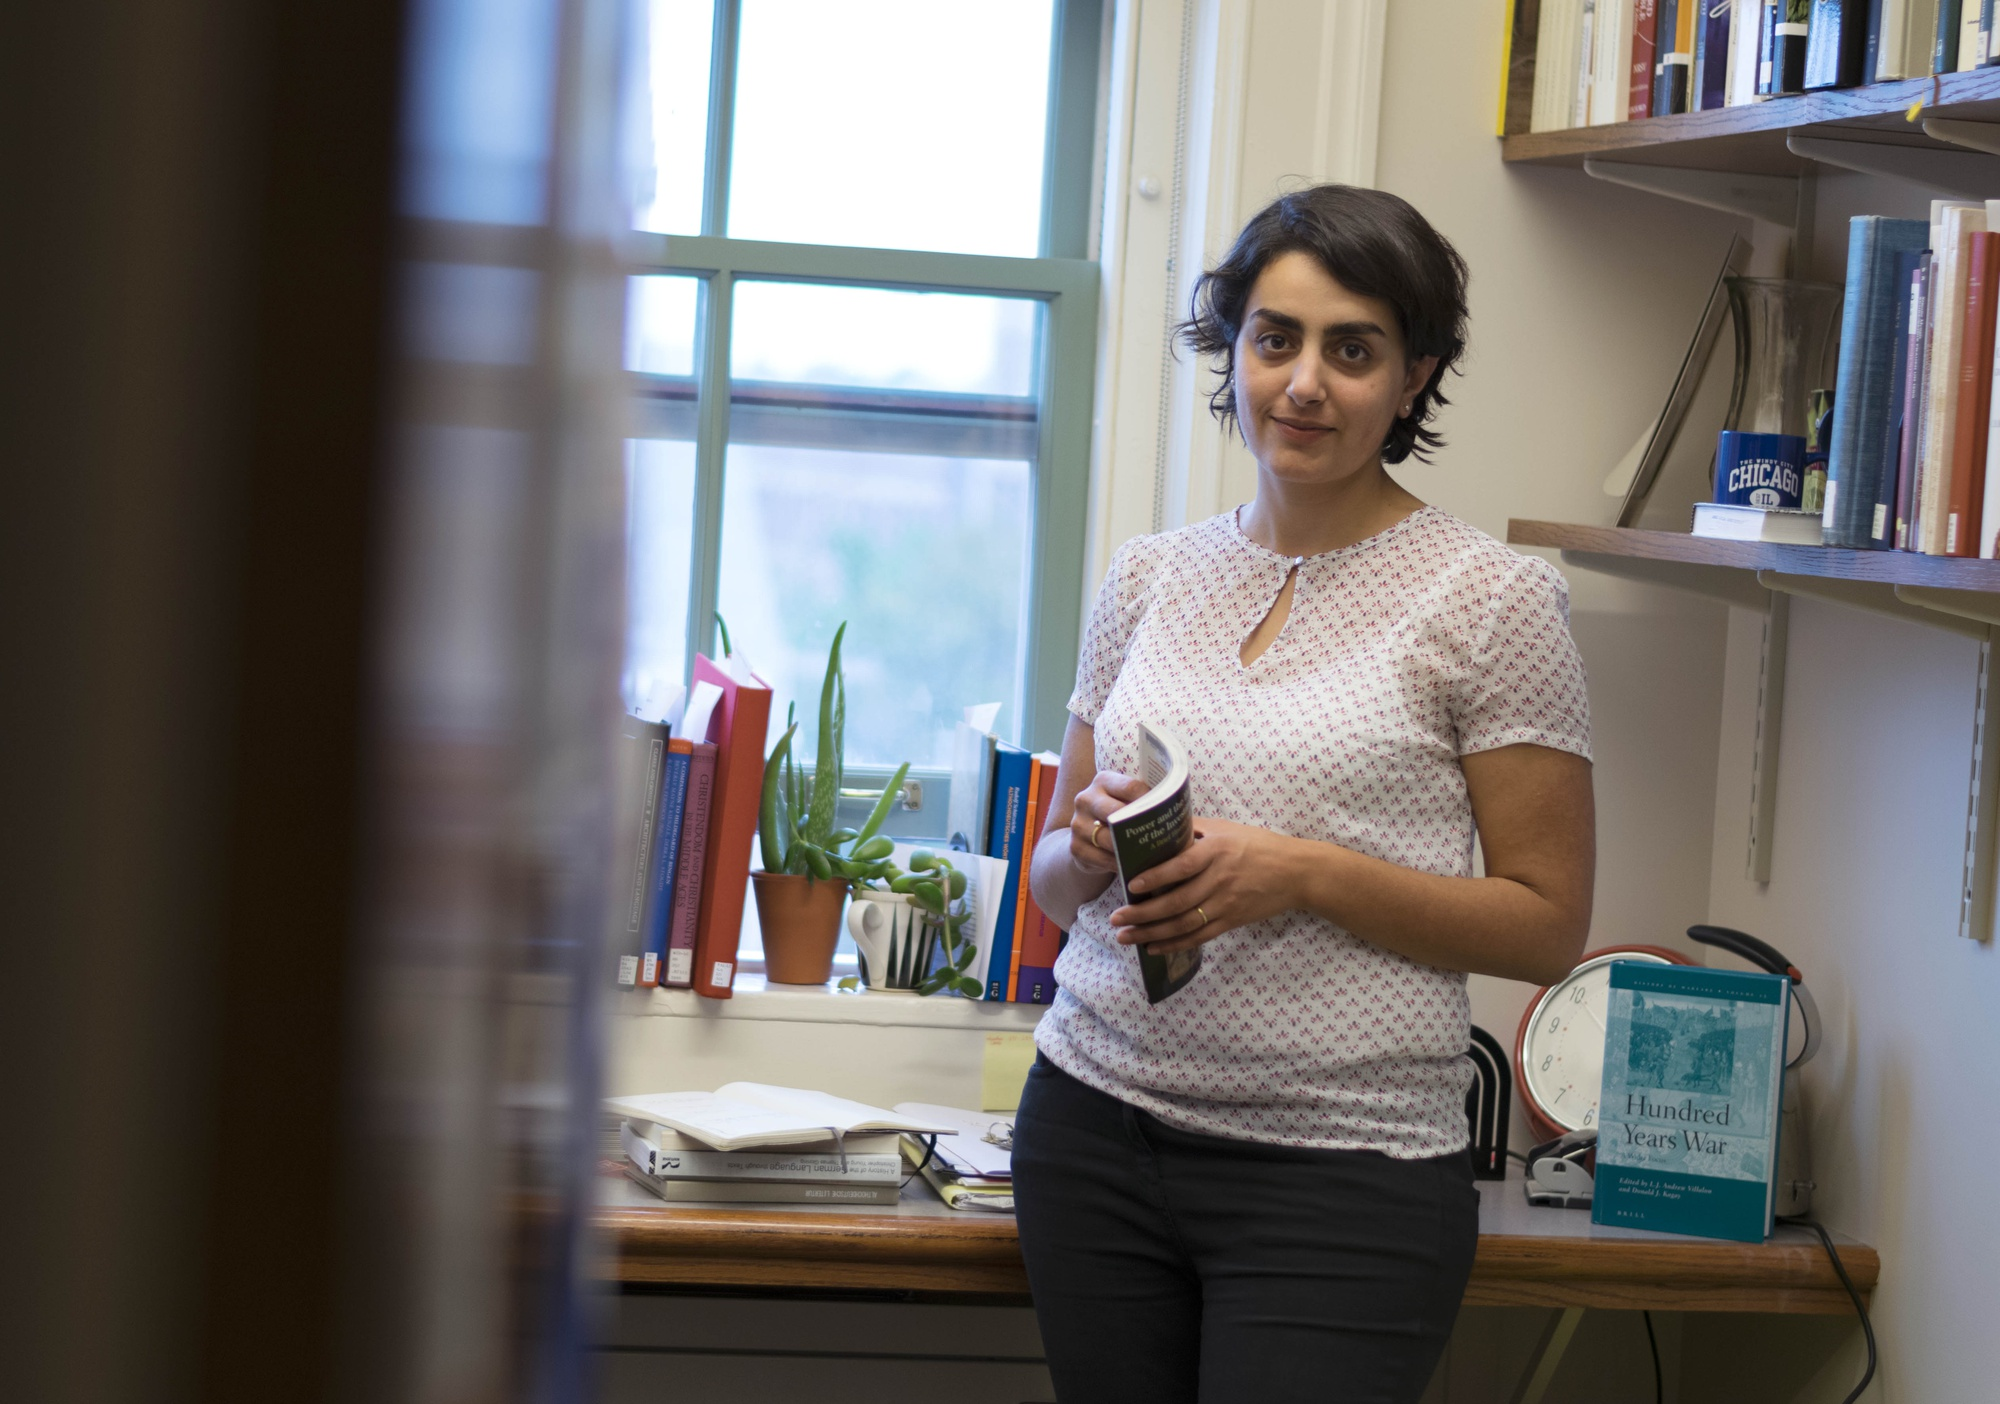 Racha Kirakosian is an Assistant Professor of German and the Study of Religion. She teaches Religion 59: The Real Game of Thrones — Culture, Society, and Religion in the Middle Ages.